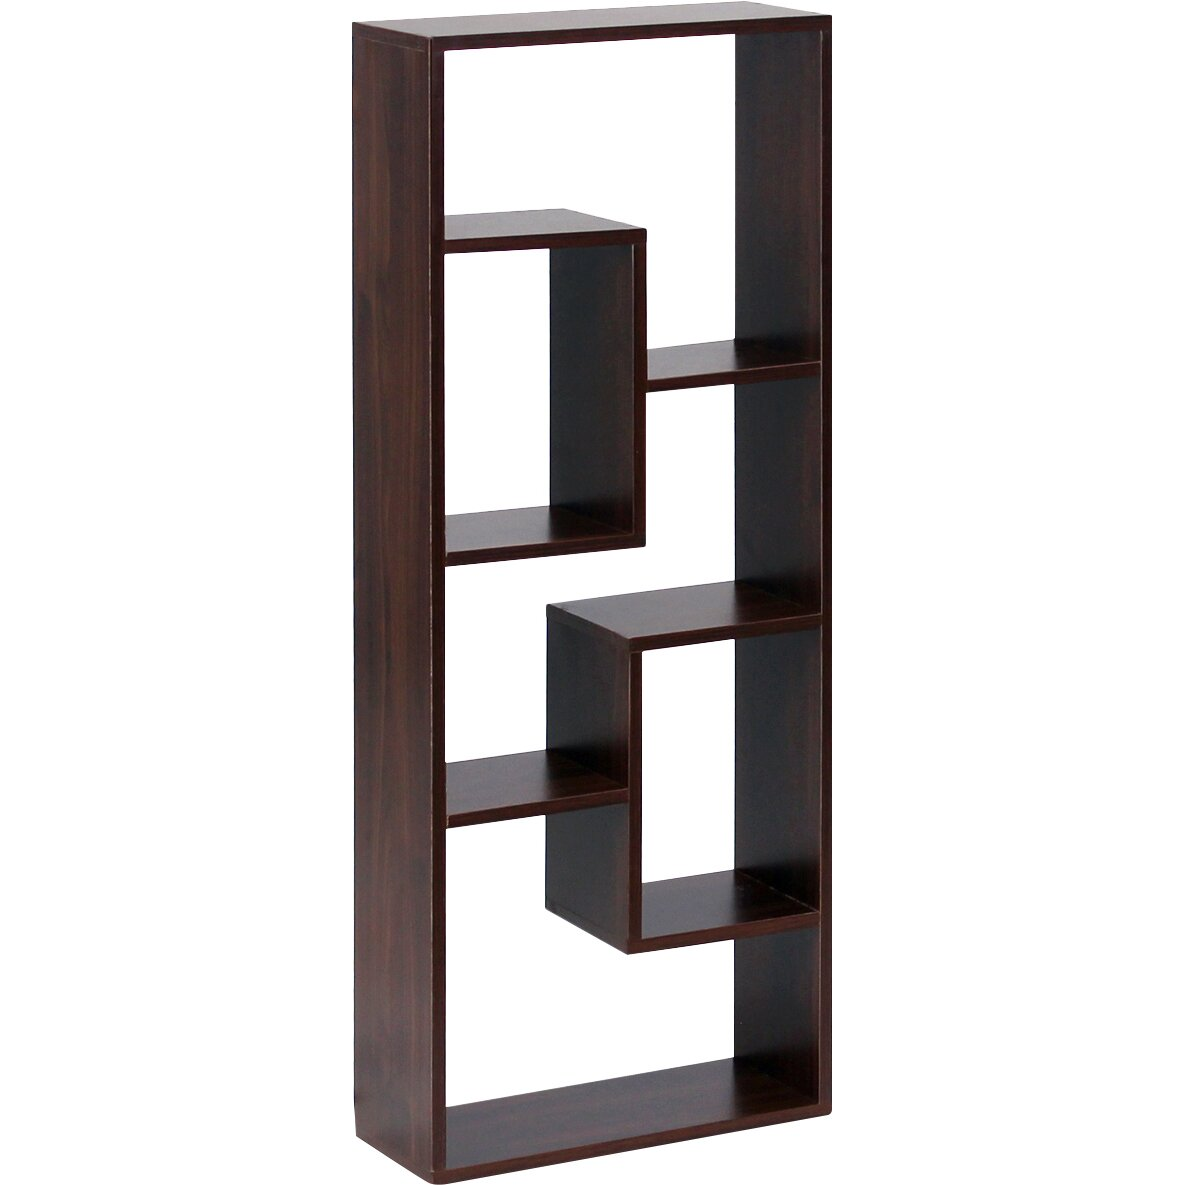 Furinno Boyate 4 Cube Wall Mounted Bookcase